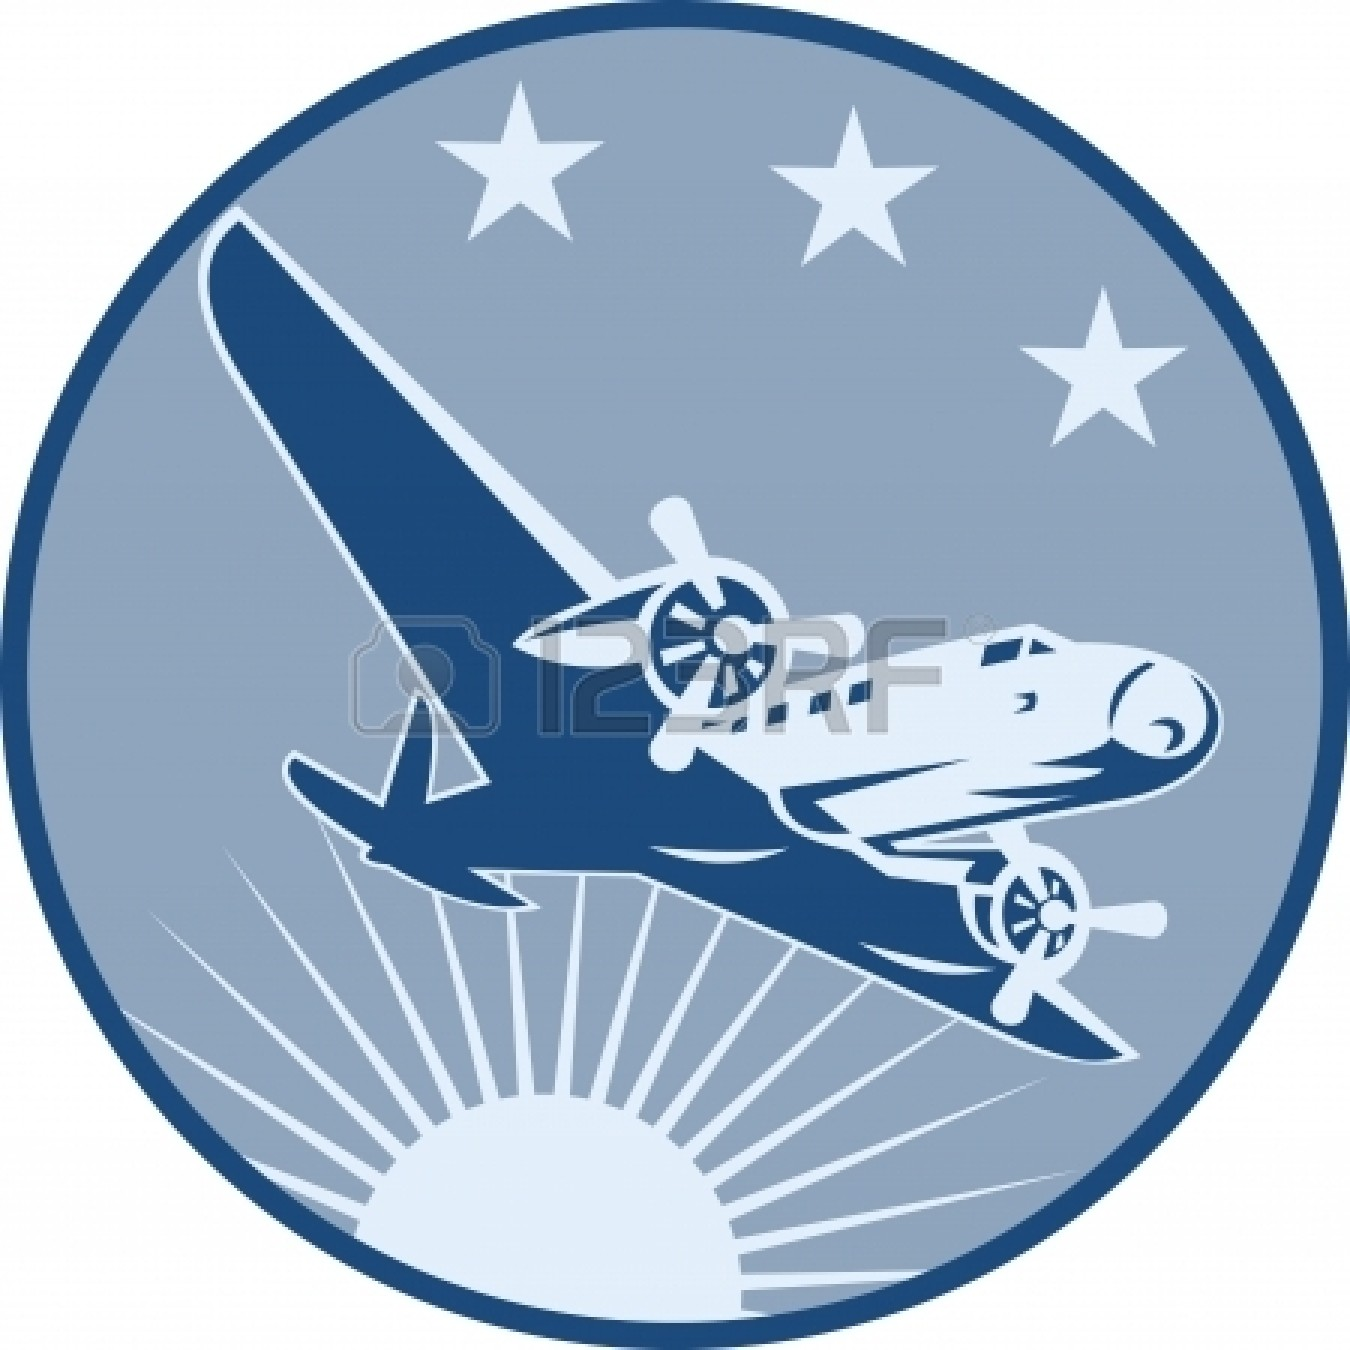 vintage%20airplane%20illustration